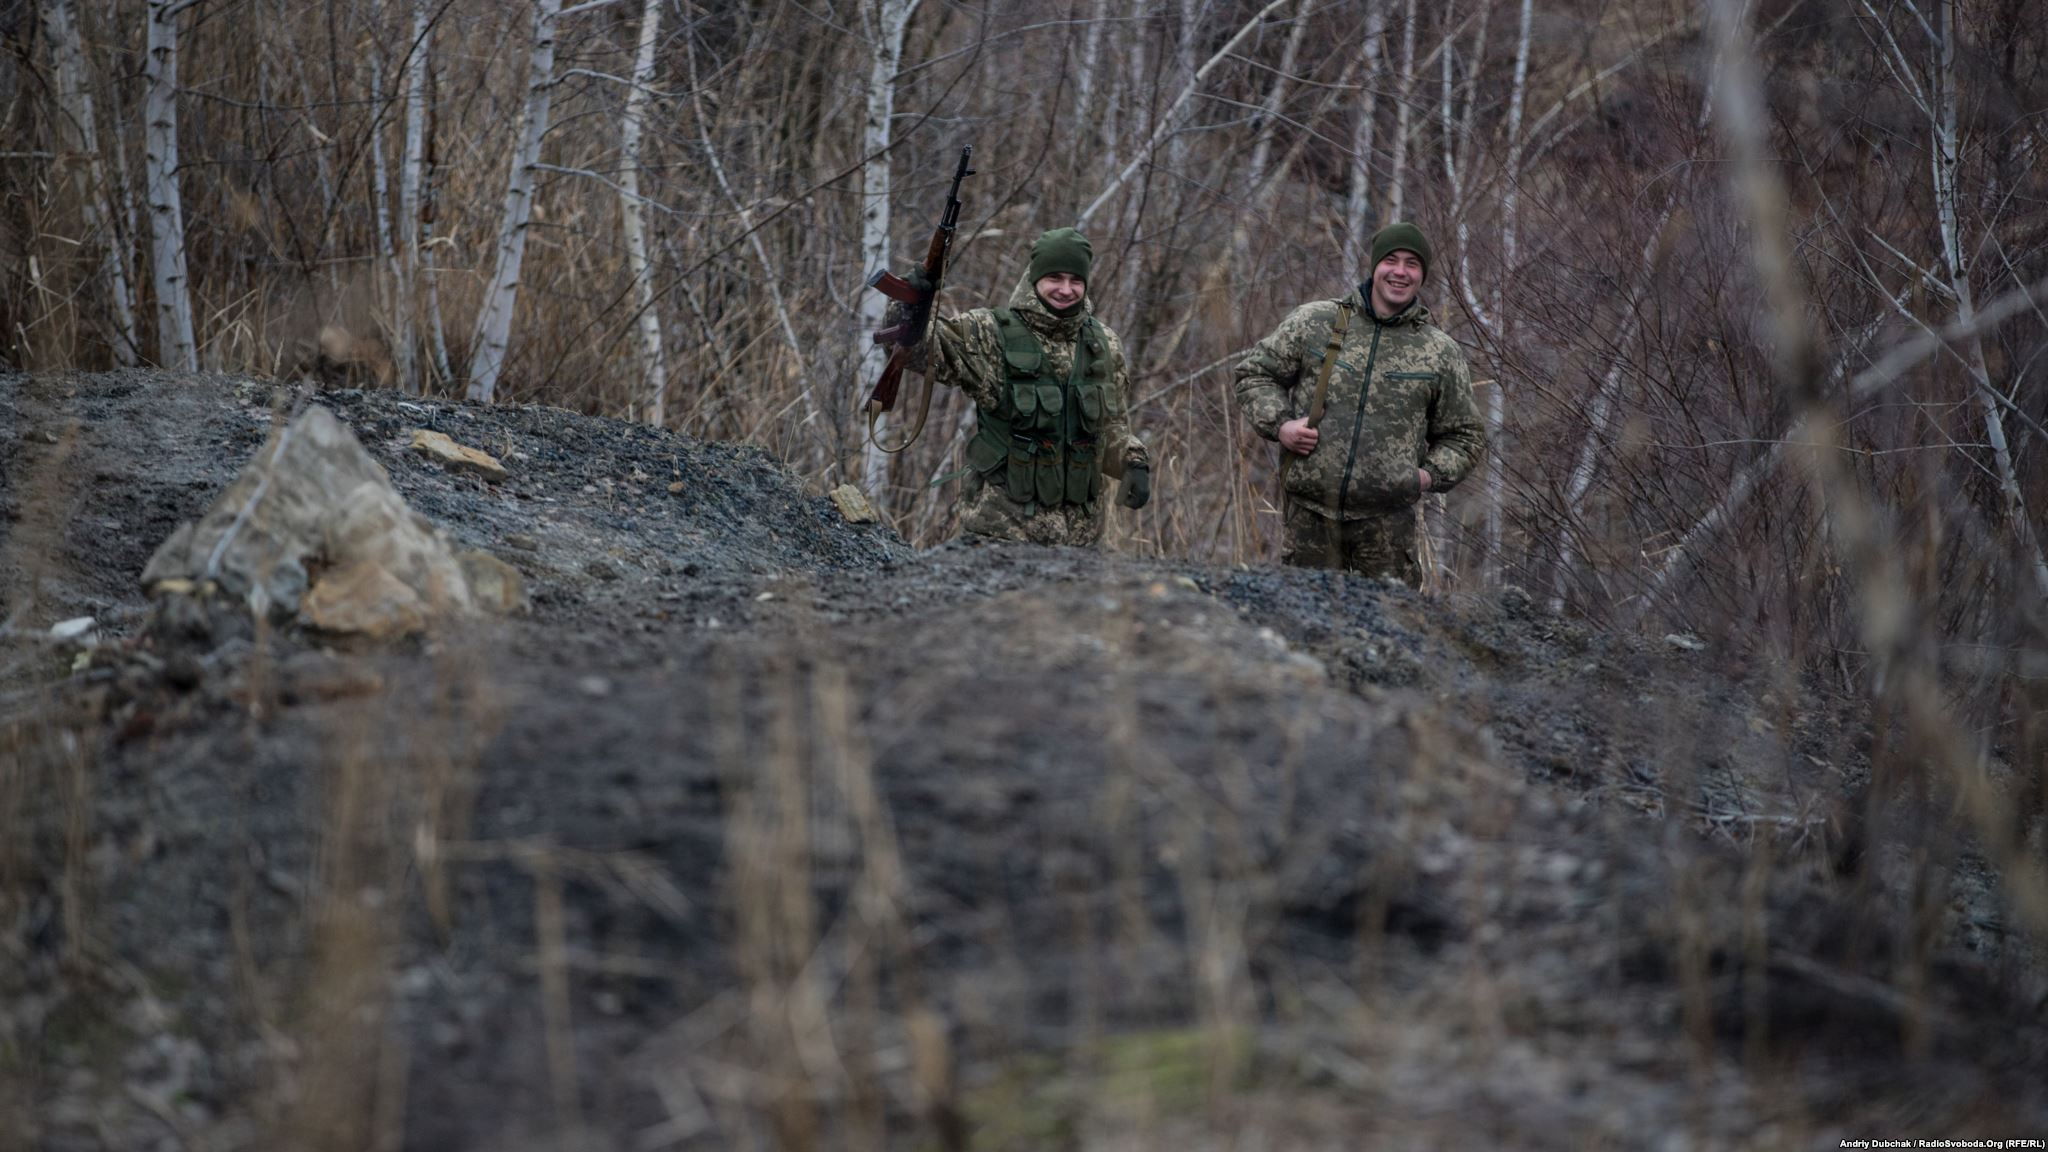 One of the flat areas of the descent from the slagheap . Guys were without ammunition and tripods, so they walked even faster. We continued to photograph them while they laughed and waved with their machineguns (photo by ukrainian military photographer Andriy Dubchak)